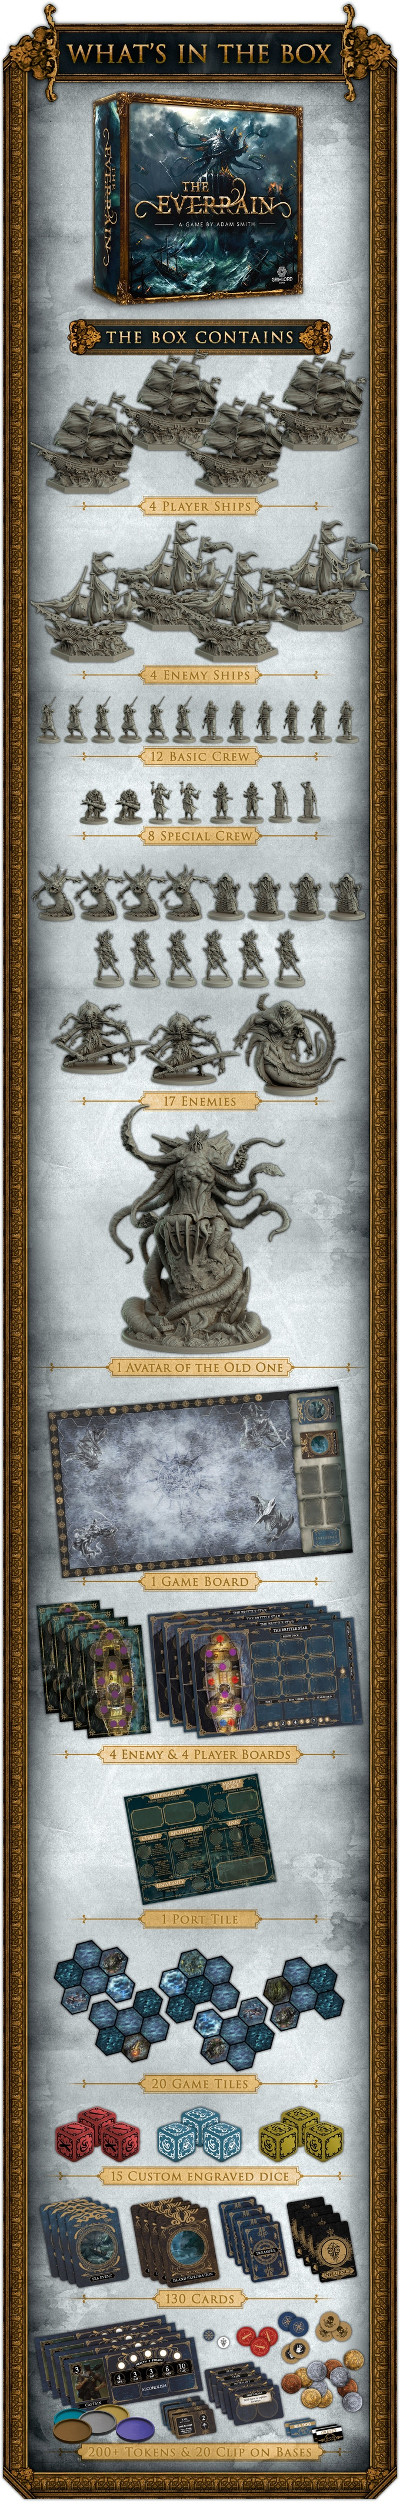 The Everrain by Grimlord Games Box Contents